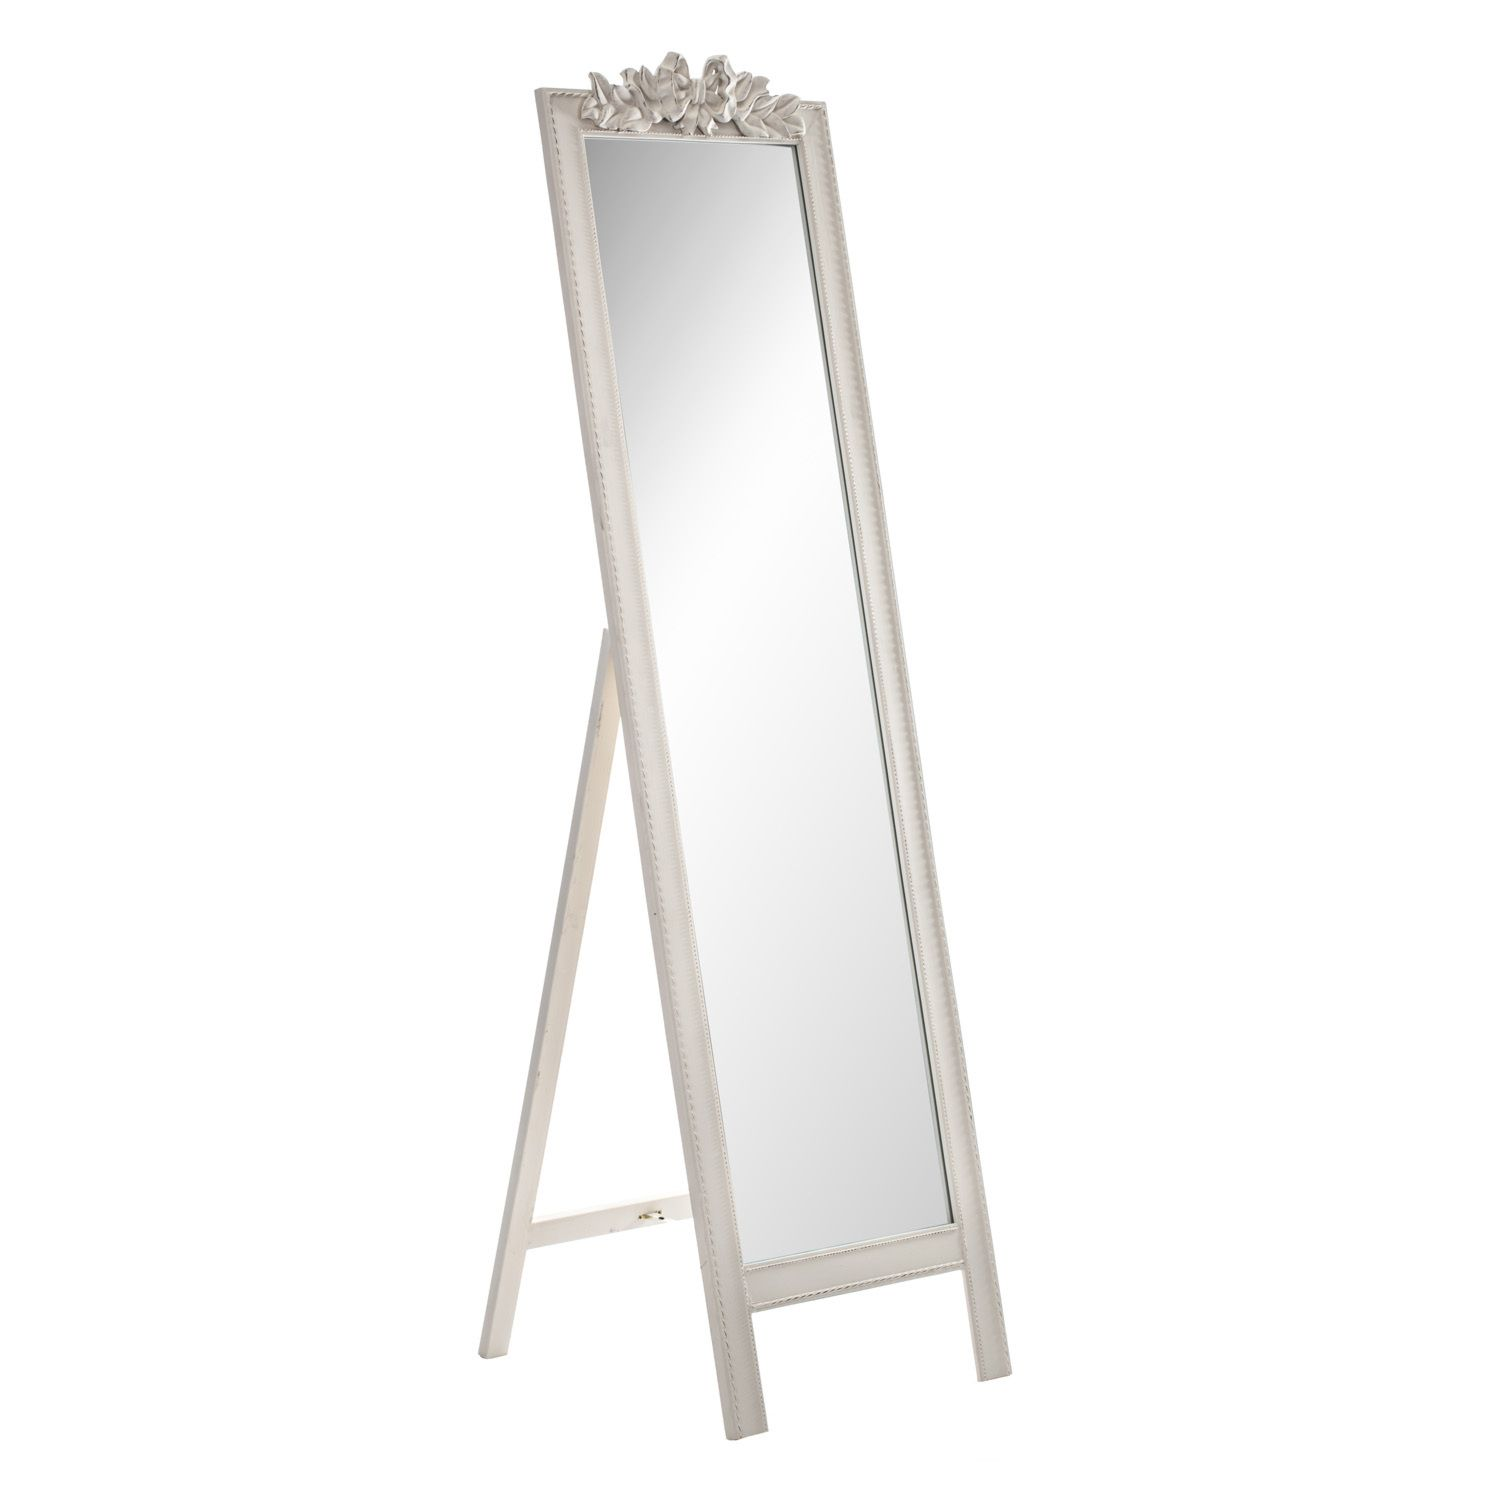 Ivory Bow Free Standing Mirror | Ideas for the flat | Pinterest ...